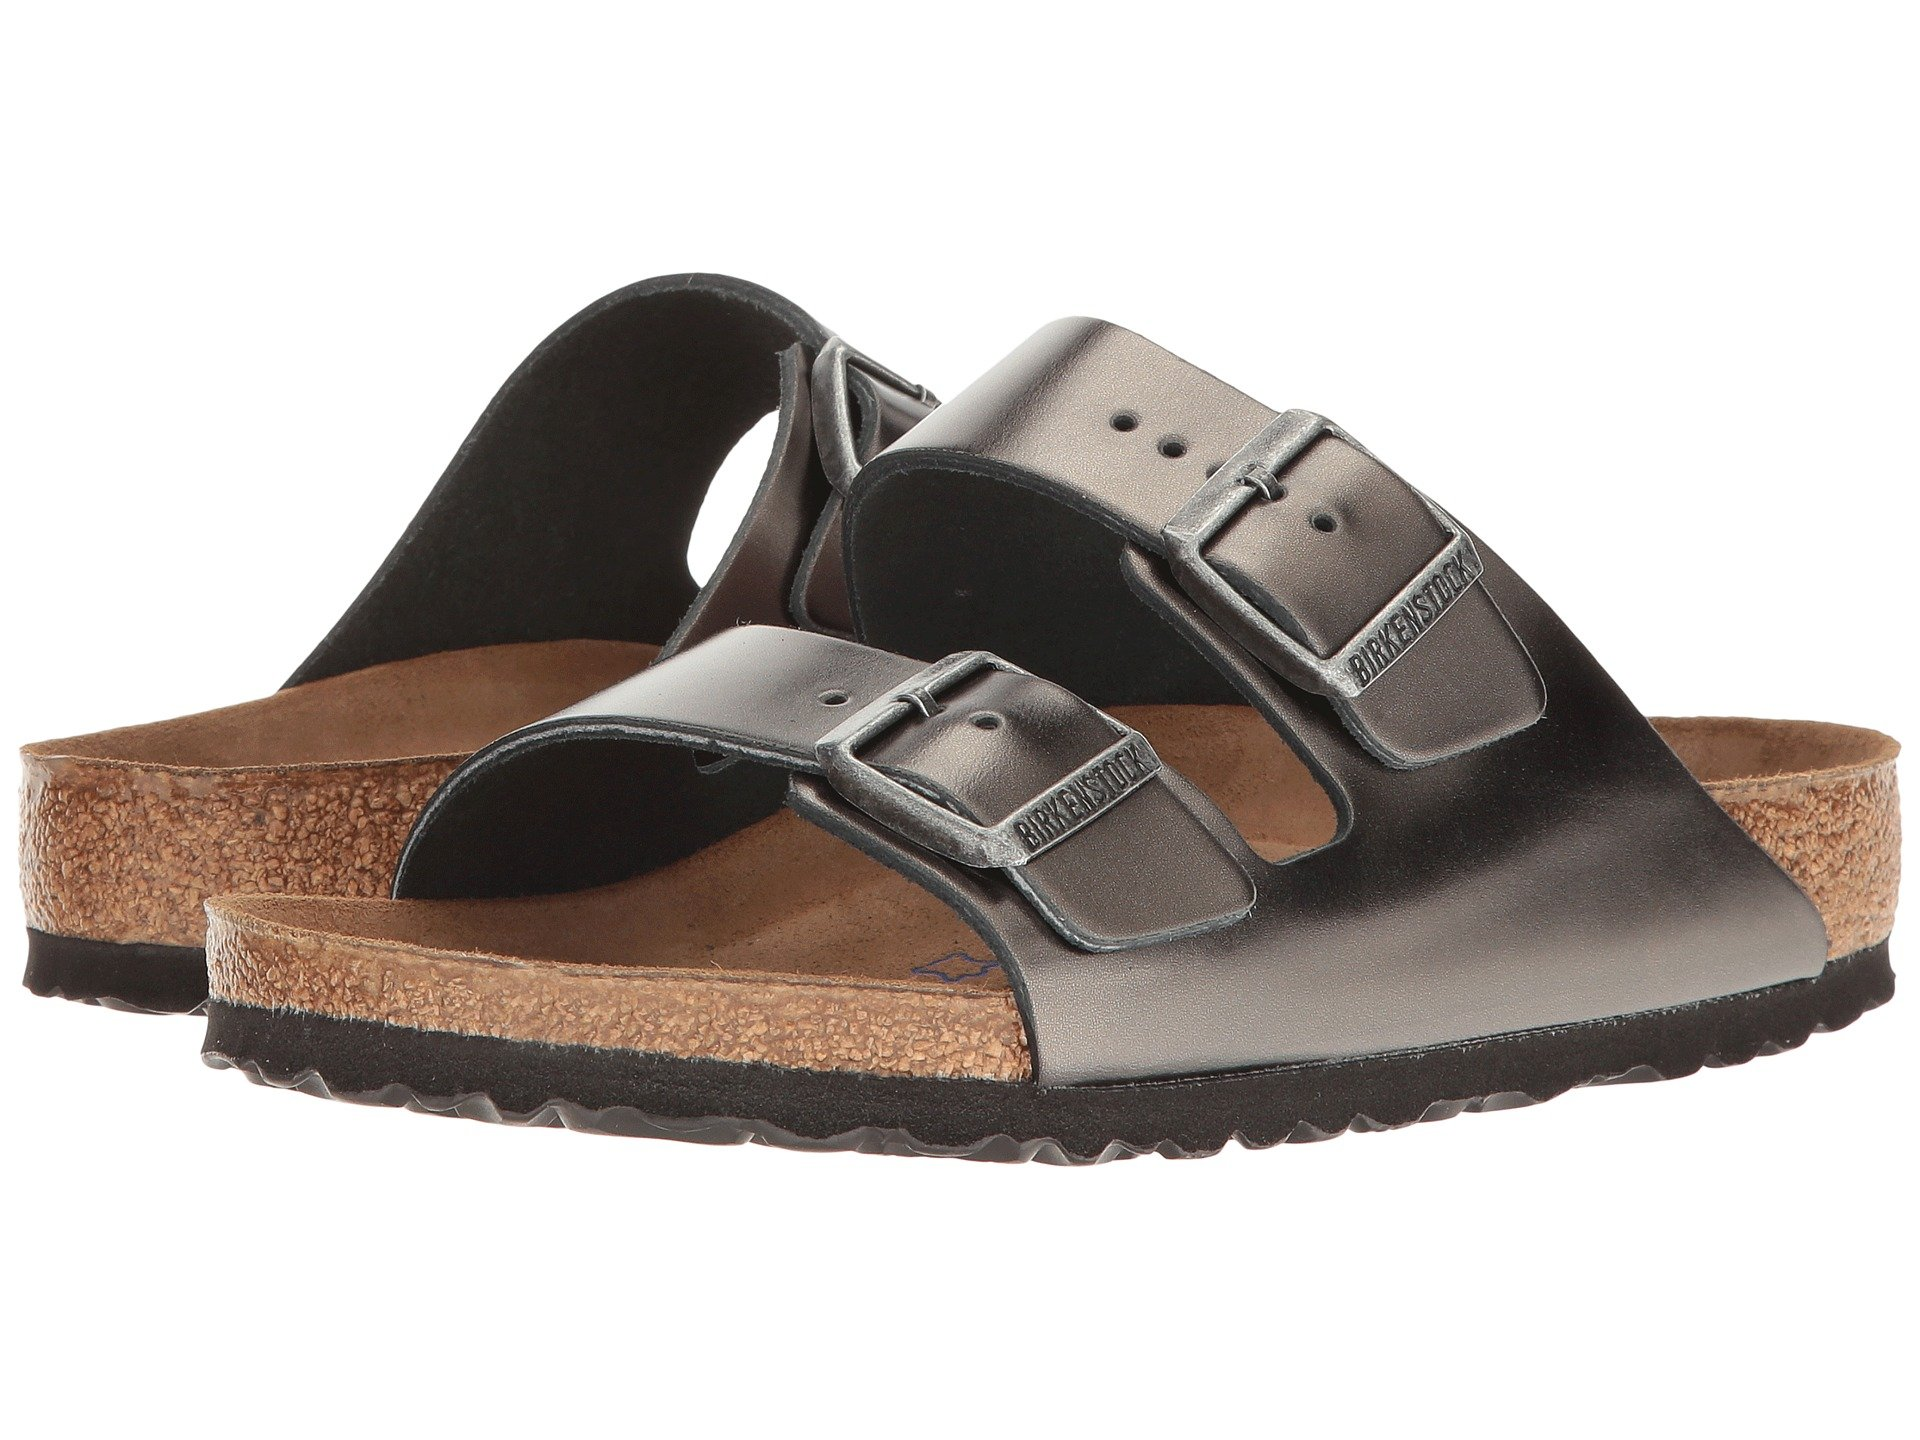 8b1c718970d Women s Birkenstock Shoes + FREE SHIPPING